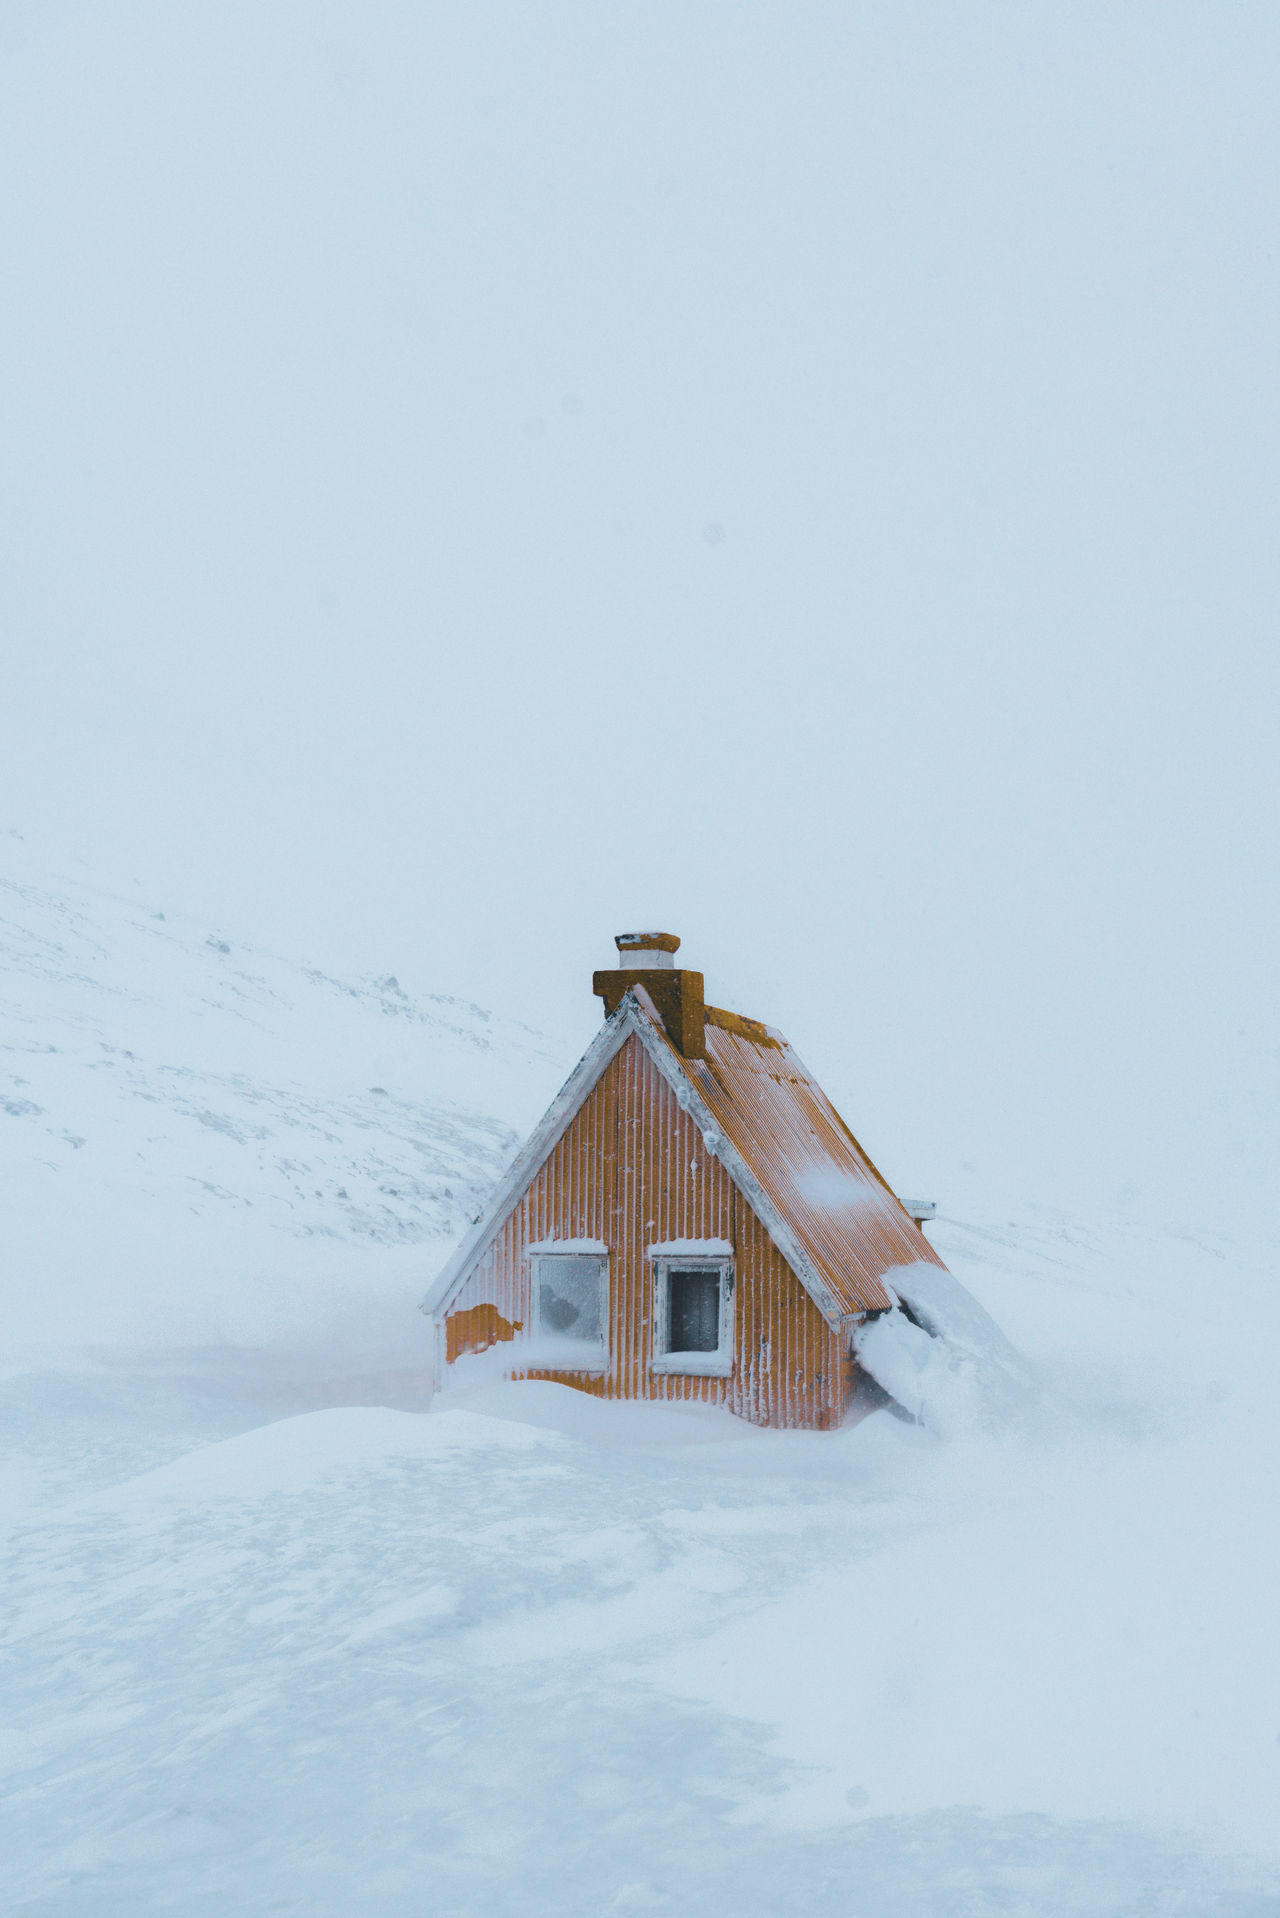 Cabin in a snowstorm in Iceland Architecture Beauty In Nature Building Exterior Built Structure Cold Temperature Day Field House Landscape Nature No People Outdoors Scenics Sky Snow Snowdrift Snowing Tranquility Weather Winter